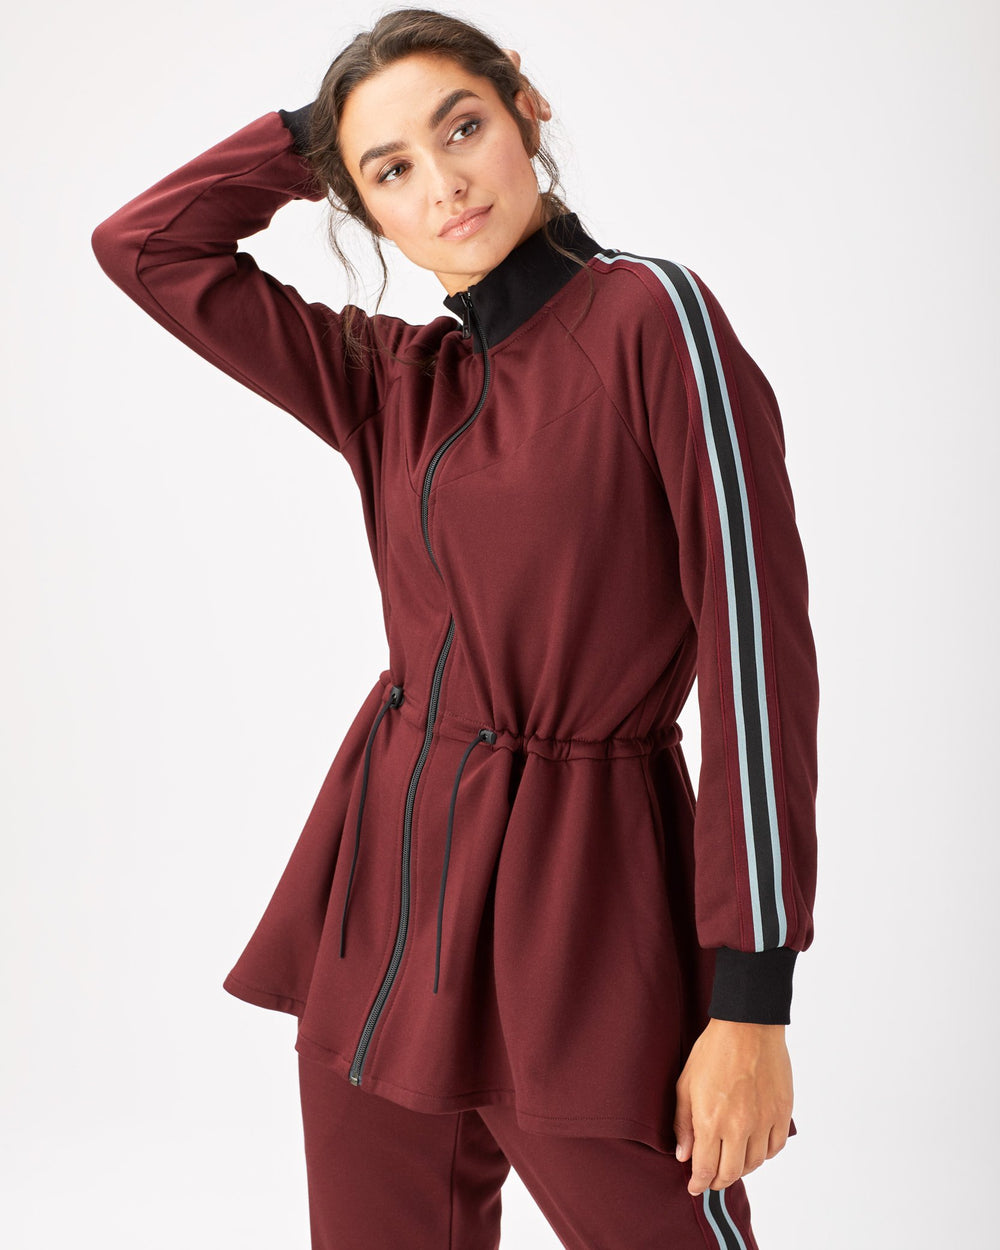 Turbo Track Jacket - Wine